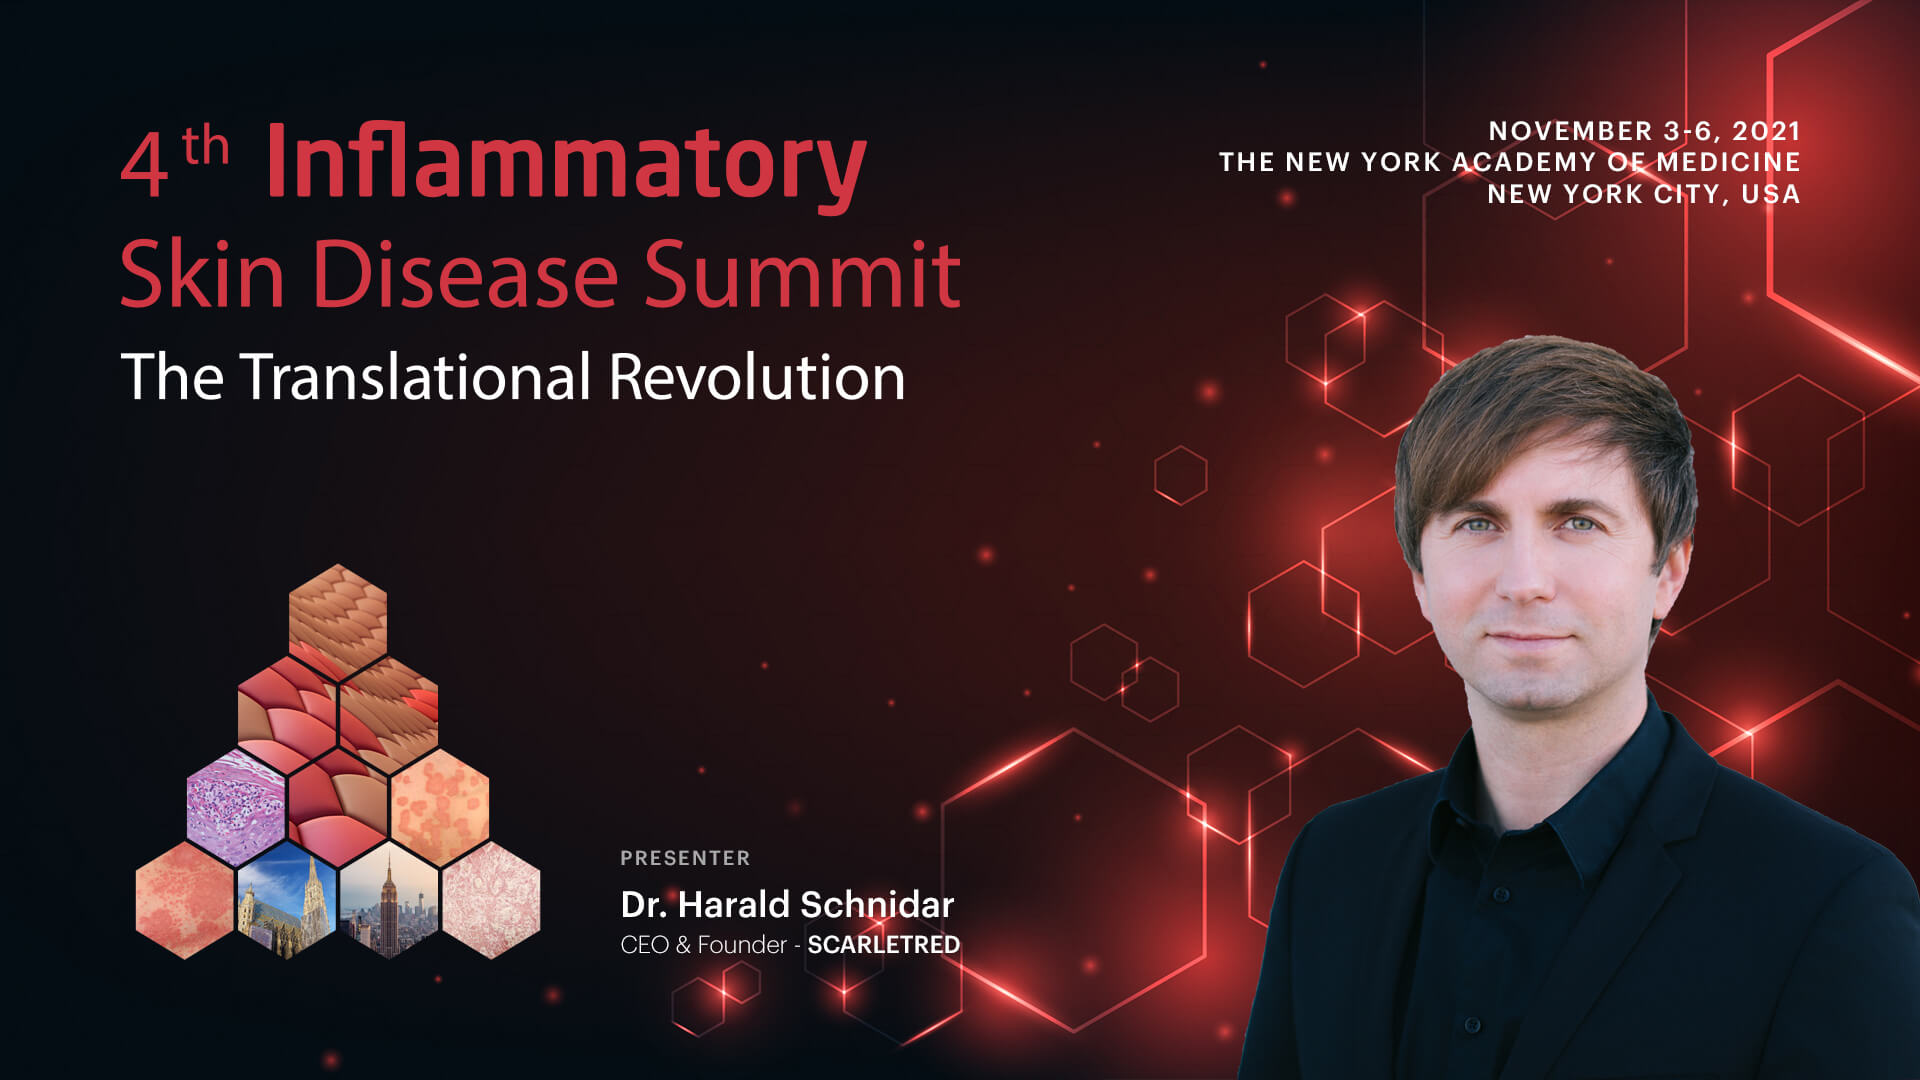 CEO Dr Harald Schnidar presenting at the 4th Inflammatory Skin Disease Summit in New York City